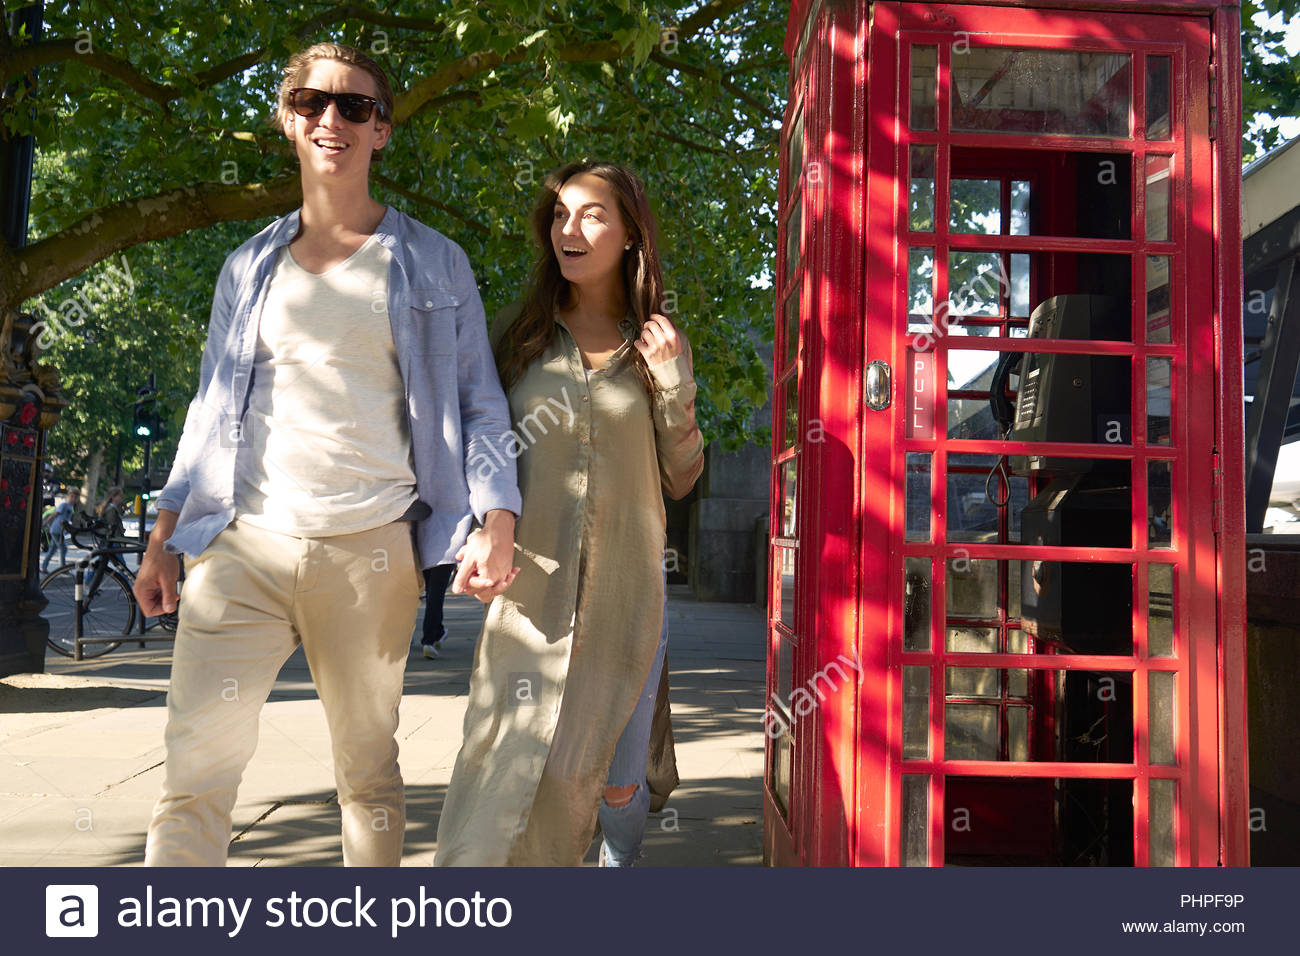 Couple by red telephone box - Stock Image